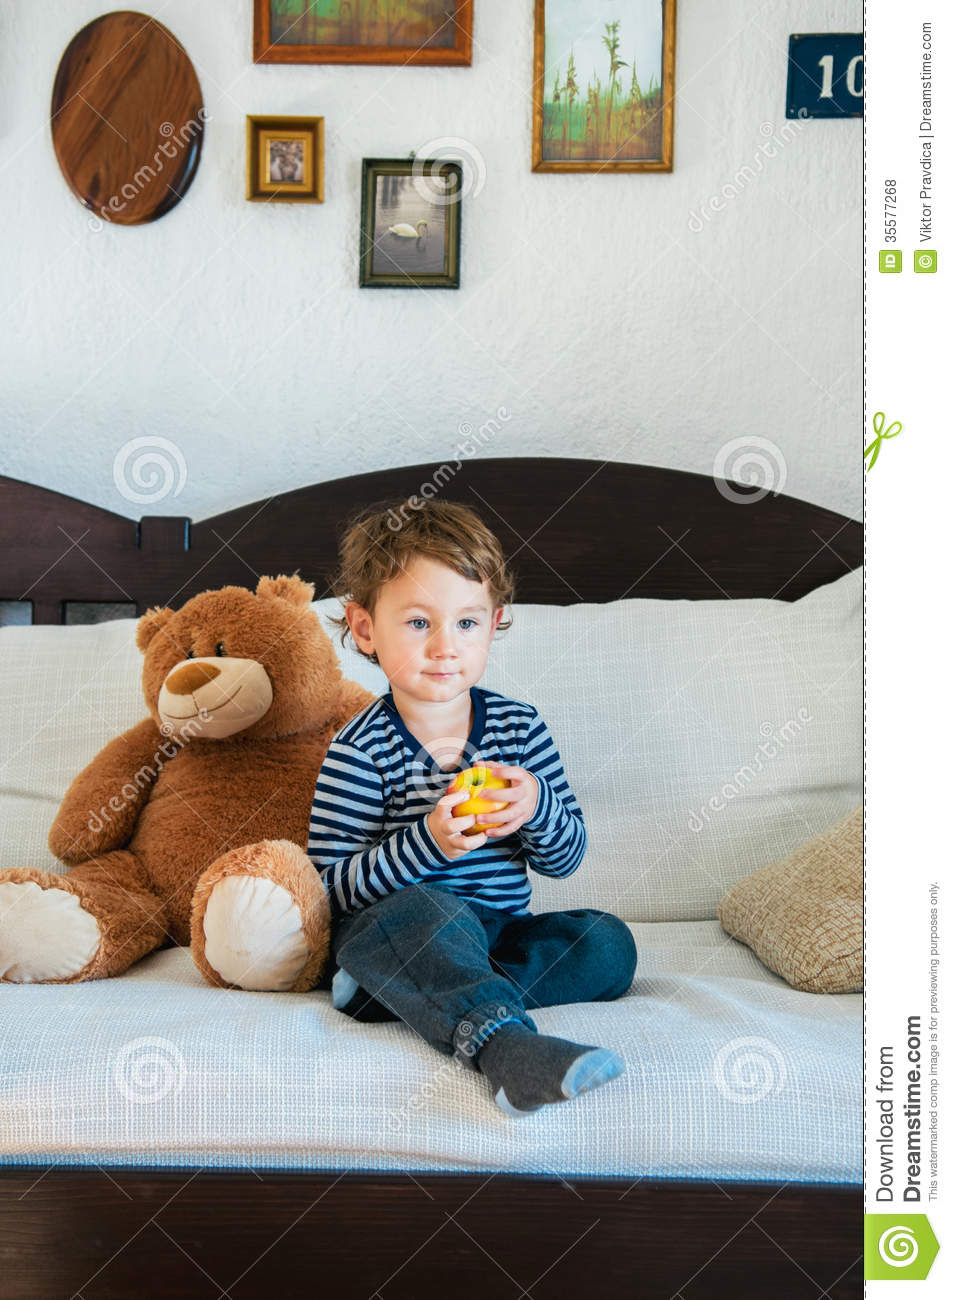 boy at home holding apple royalty free stock photos